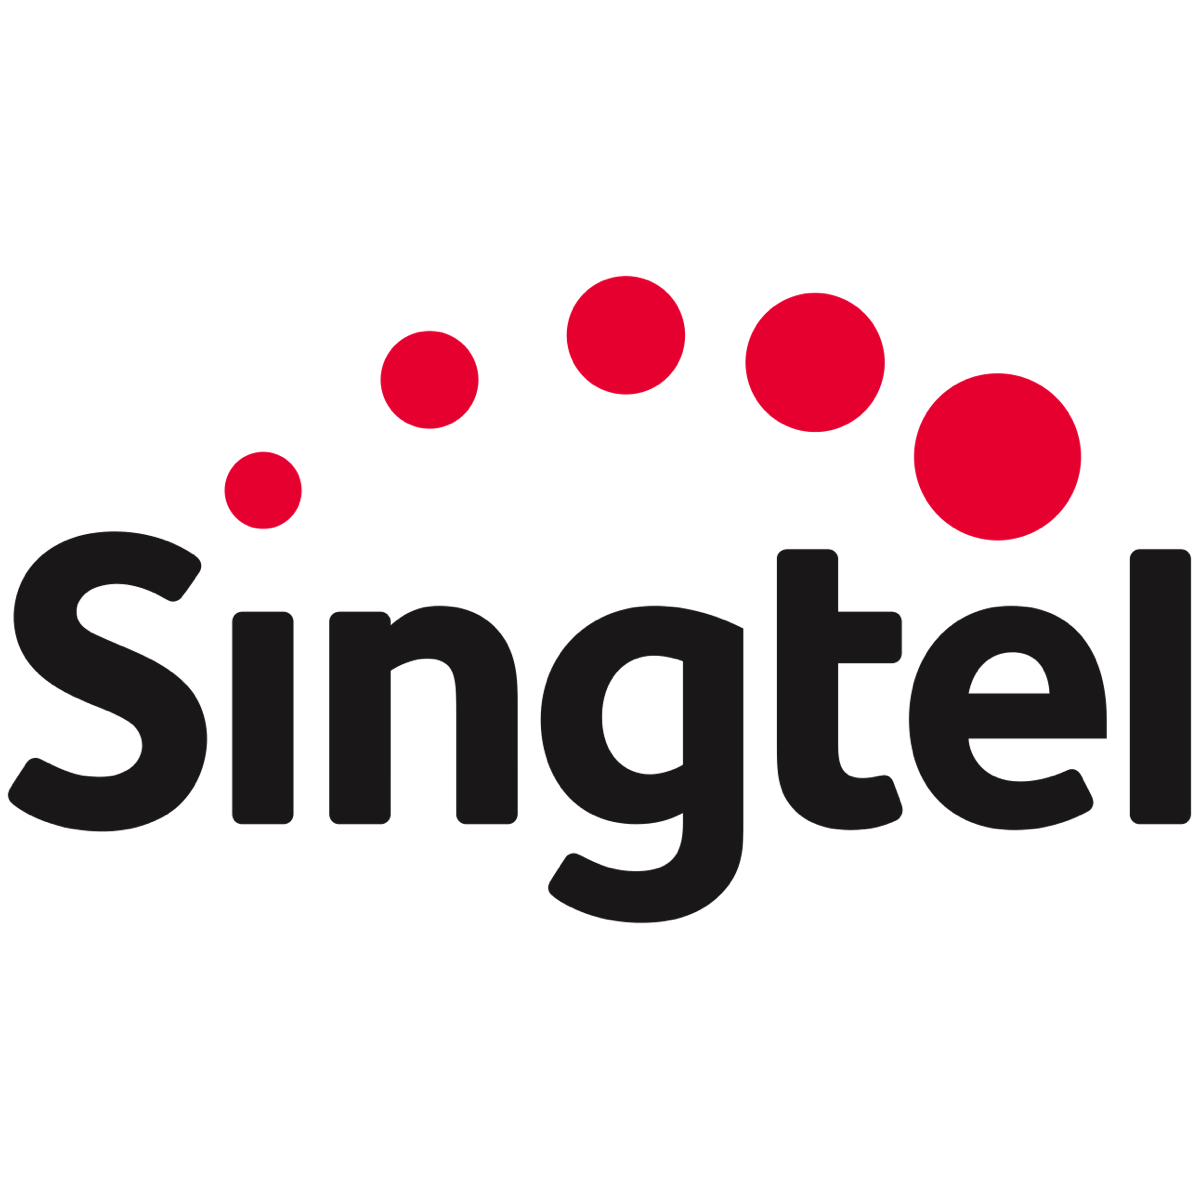 Singtel - RHB Invest 2017-05-19: Chilly Down Under